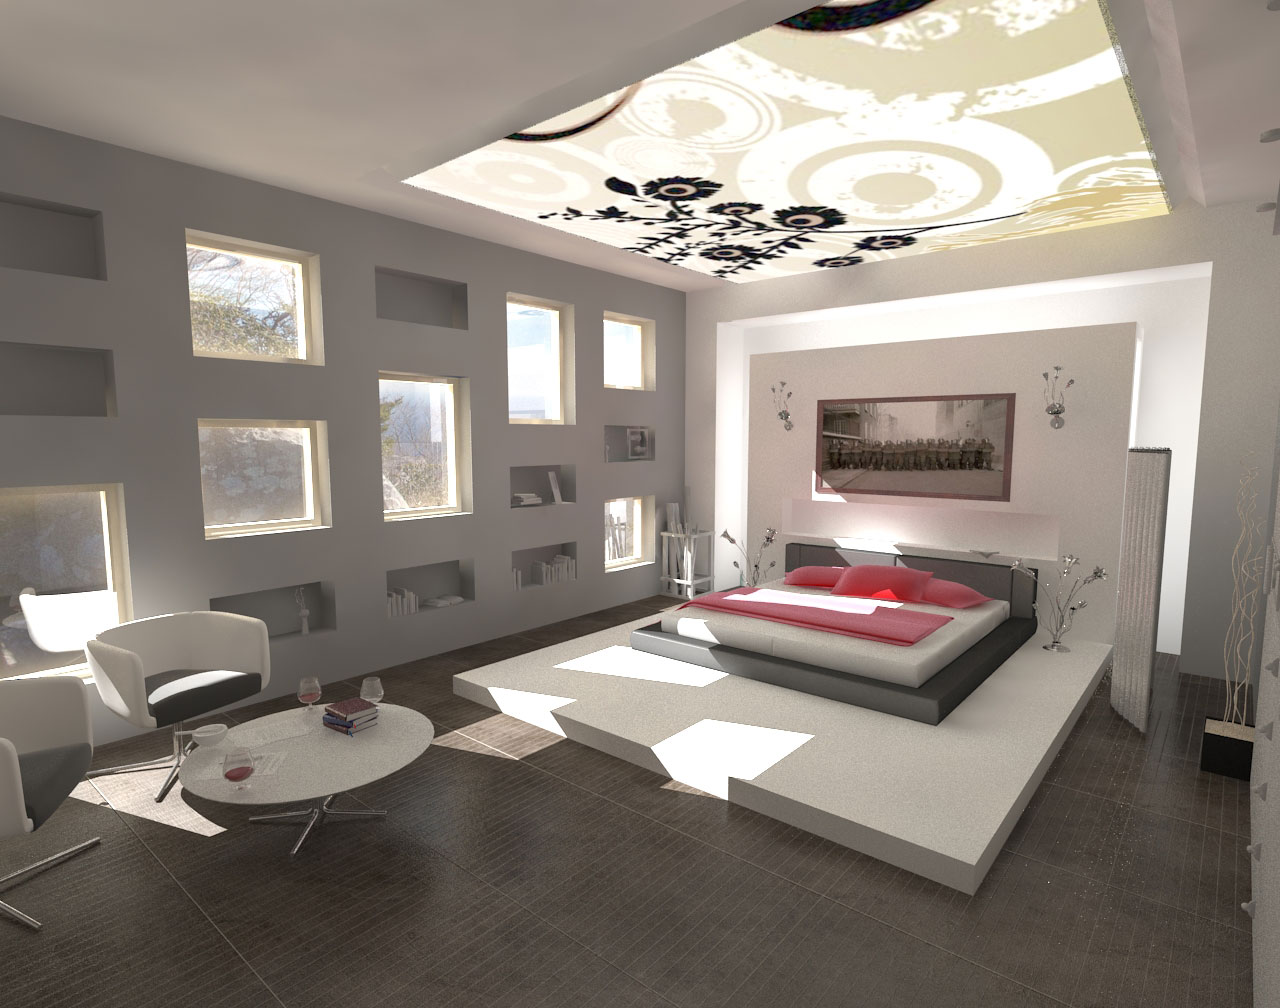 Decorations minimalist design modern bedroom interior for Interior bed design images